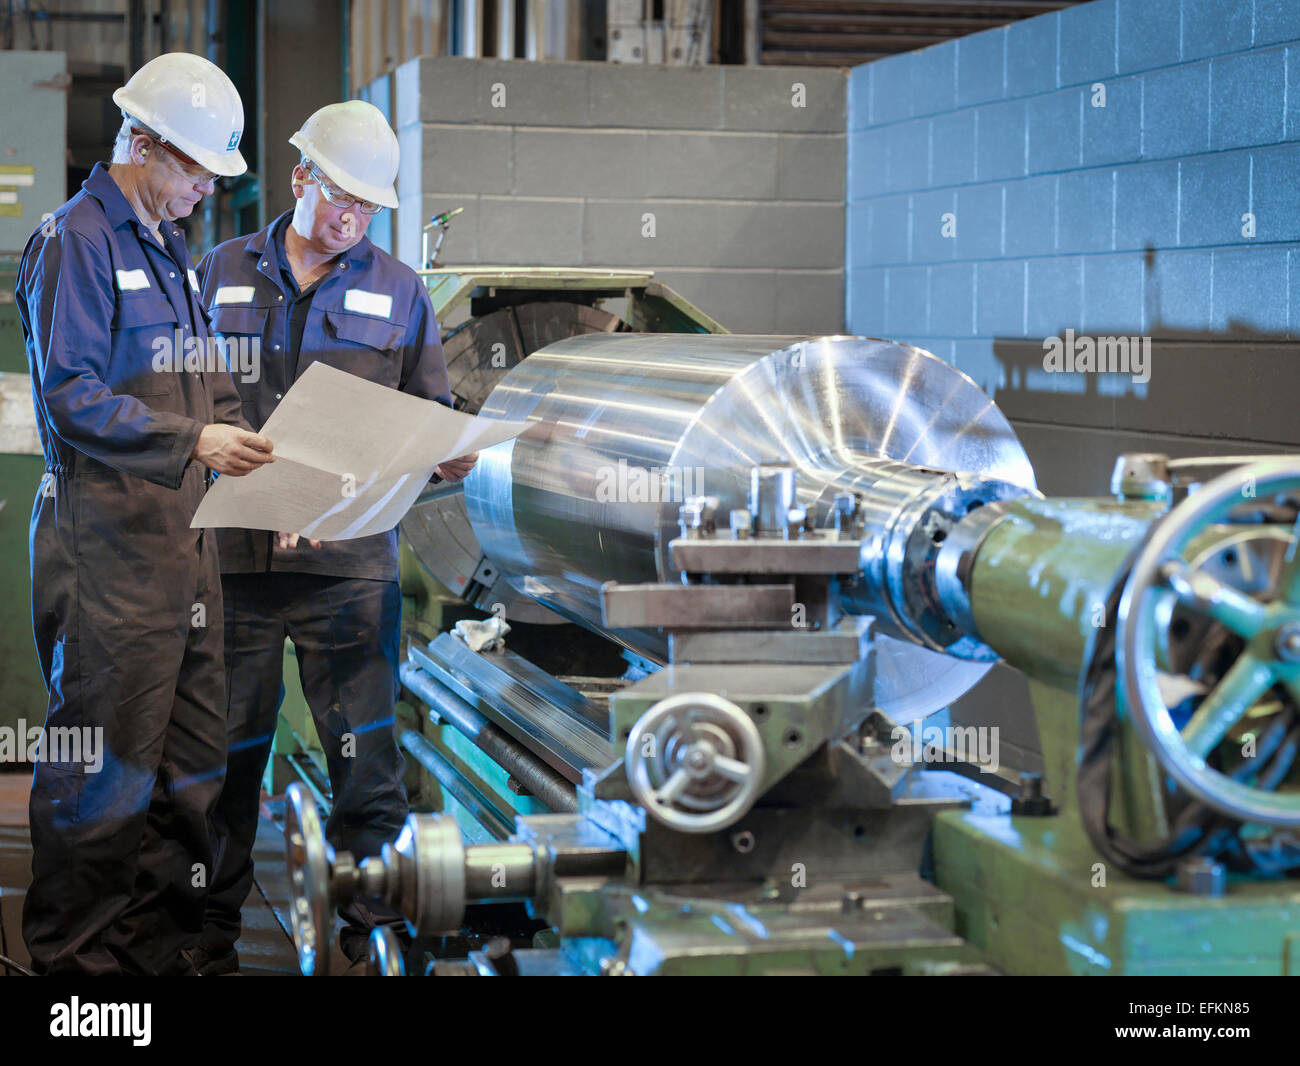 Engineers working with drawings on lathe - Stock Image